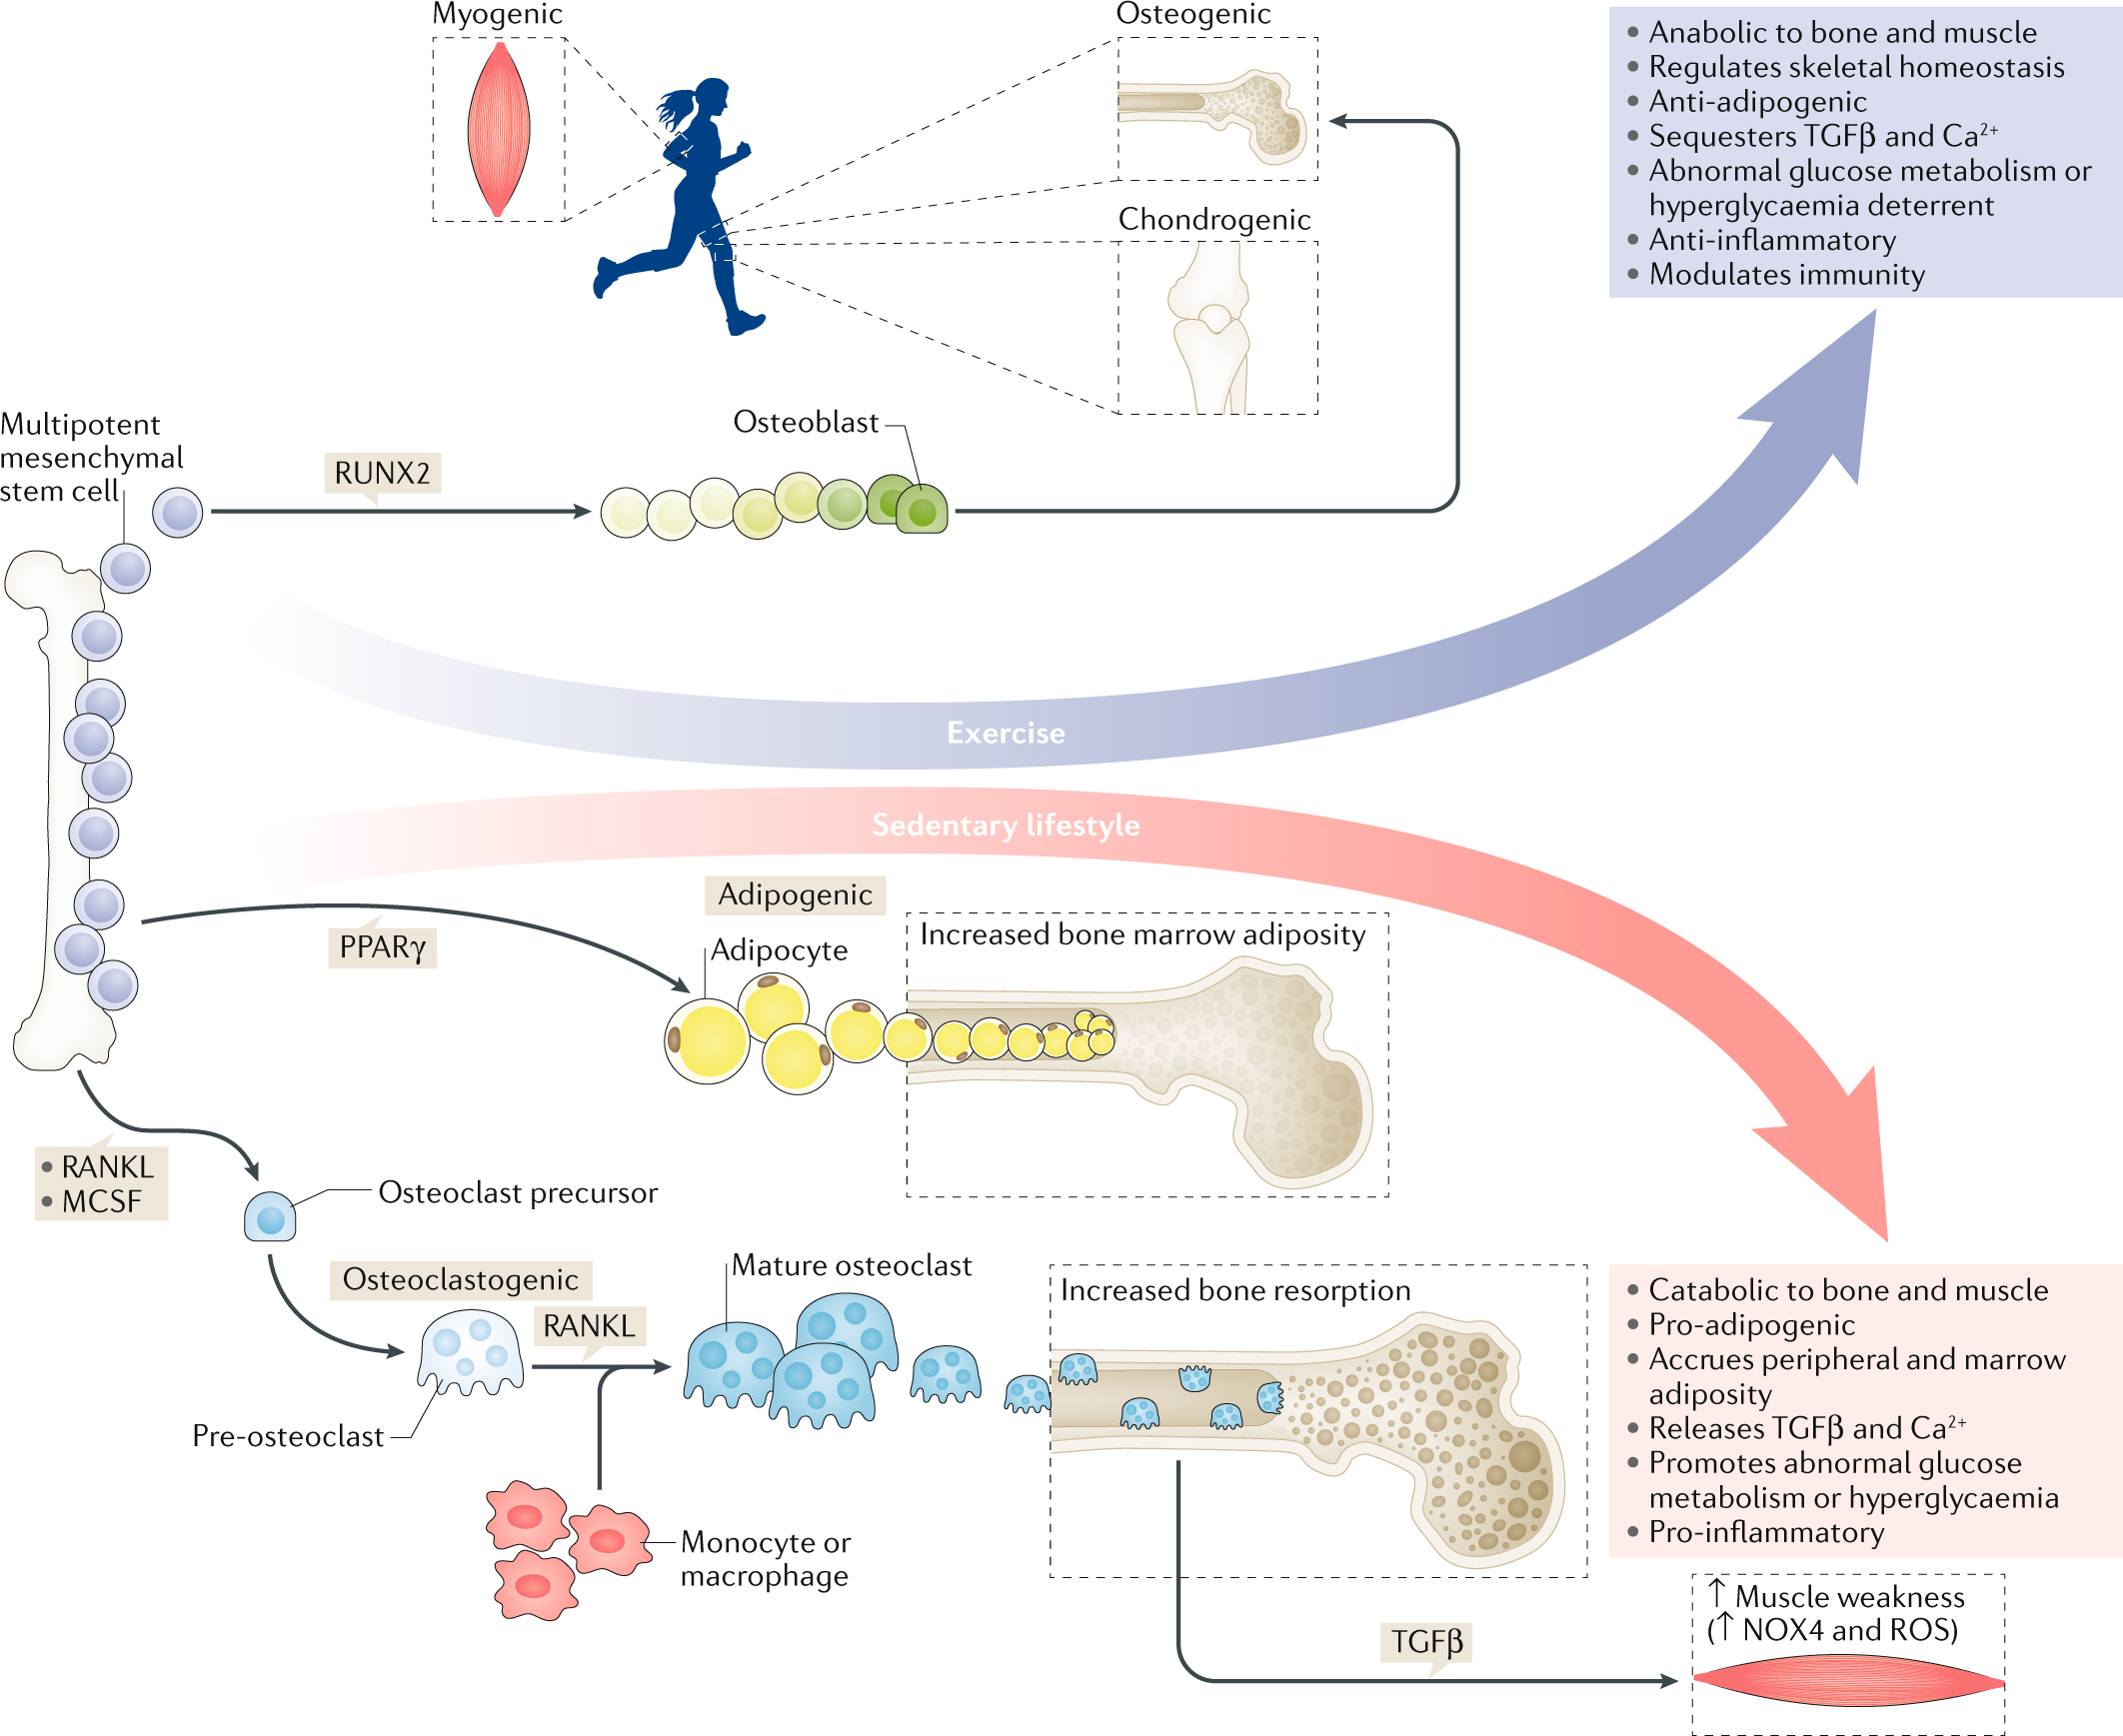 Combating osteoporosis and obesity with exercise: leveraging